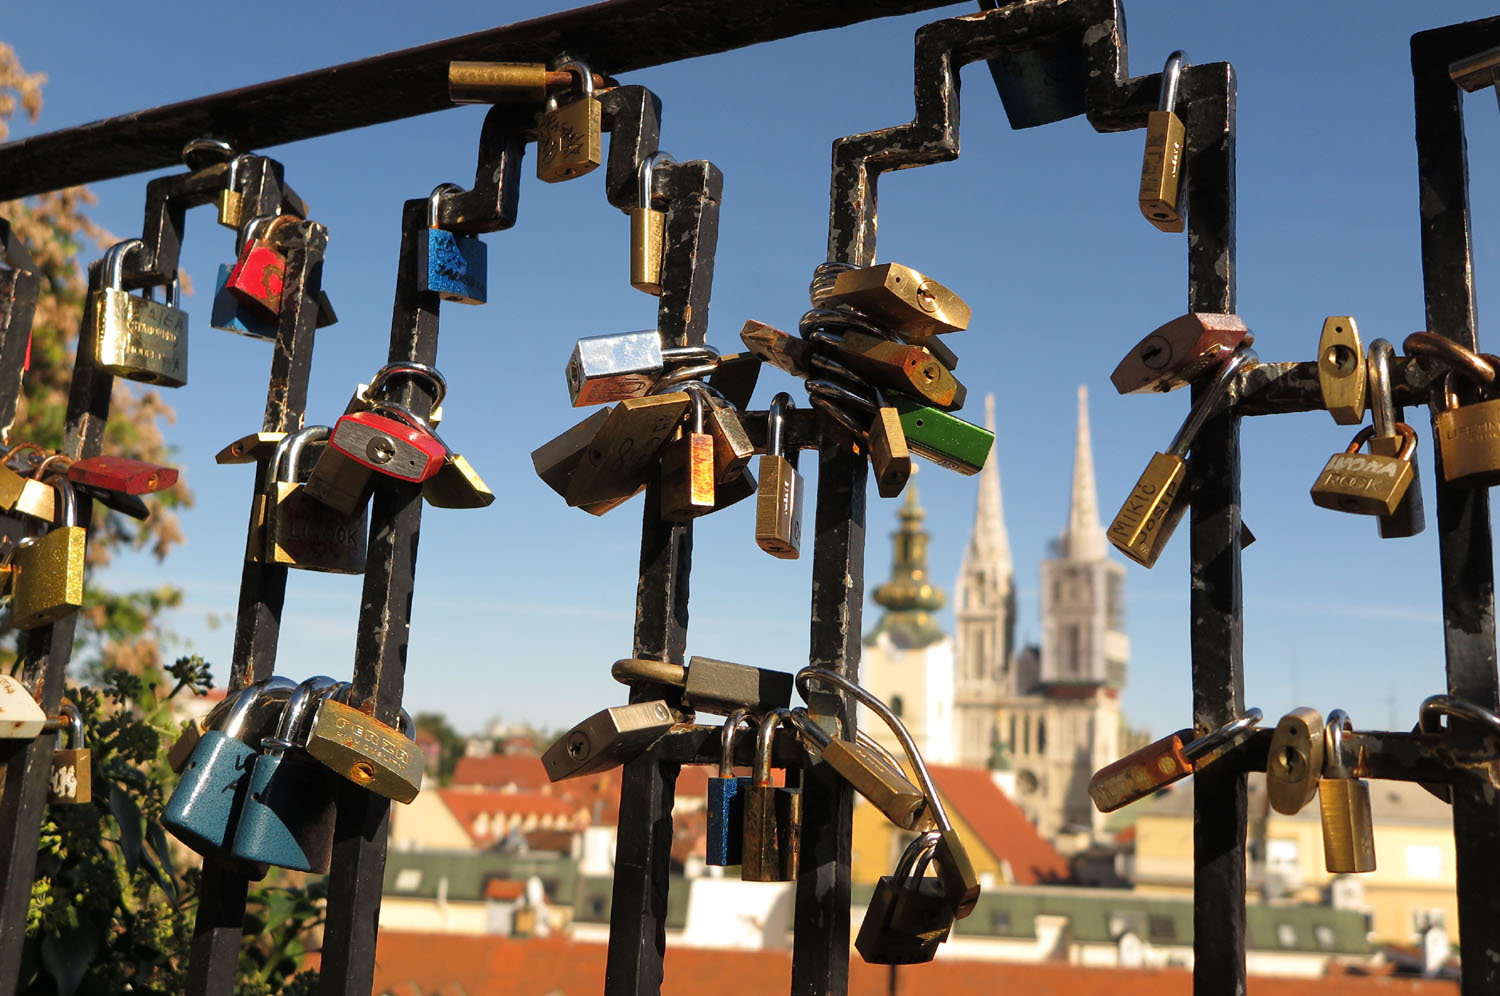 croatia-zagreb-locks